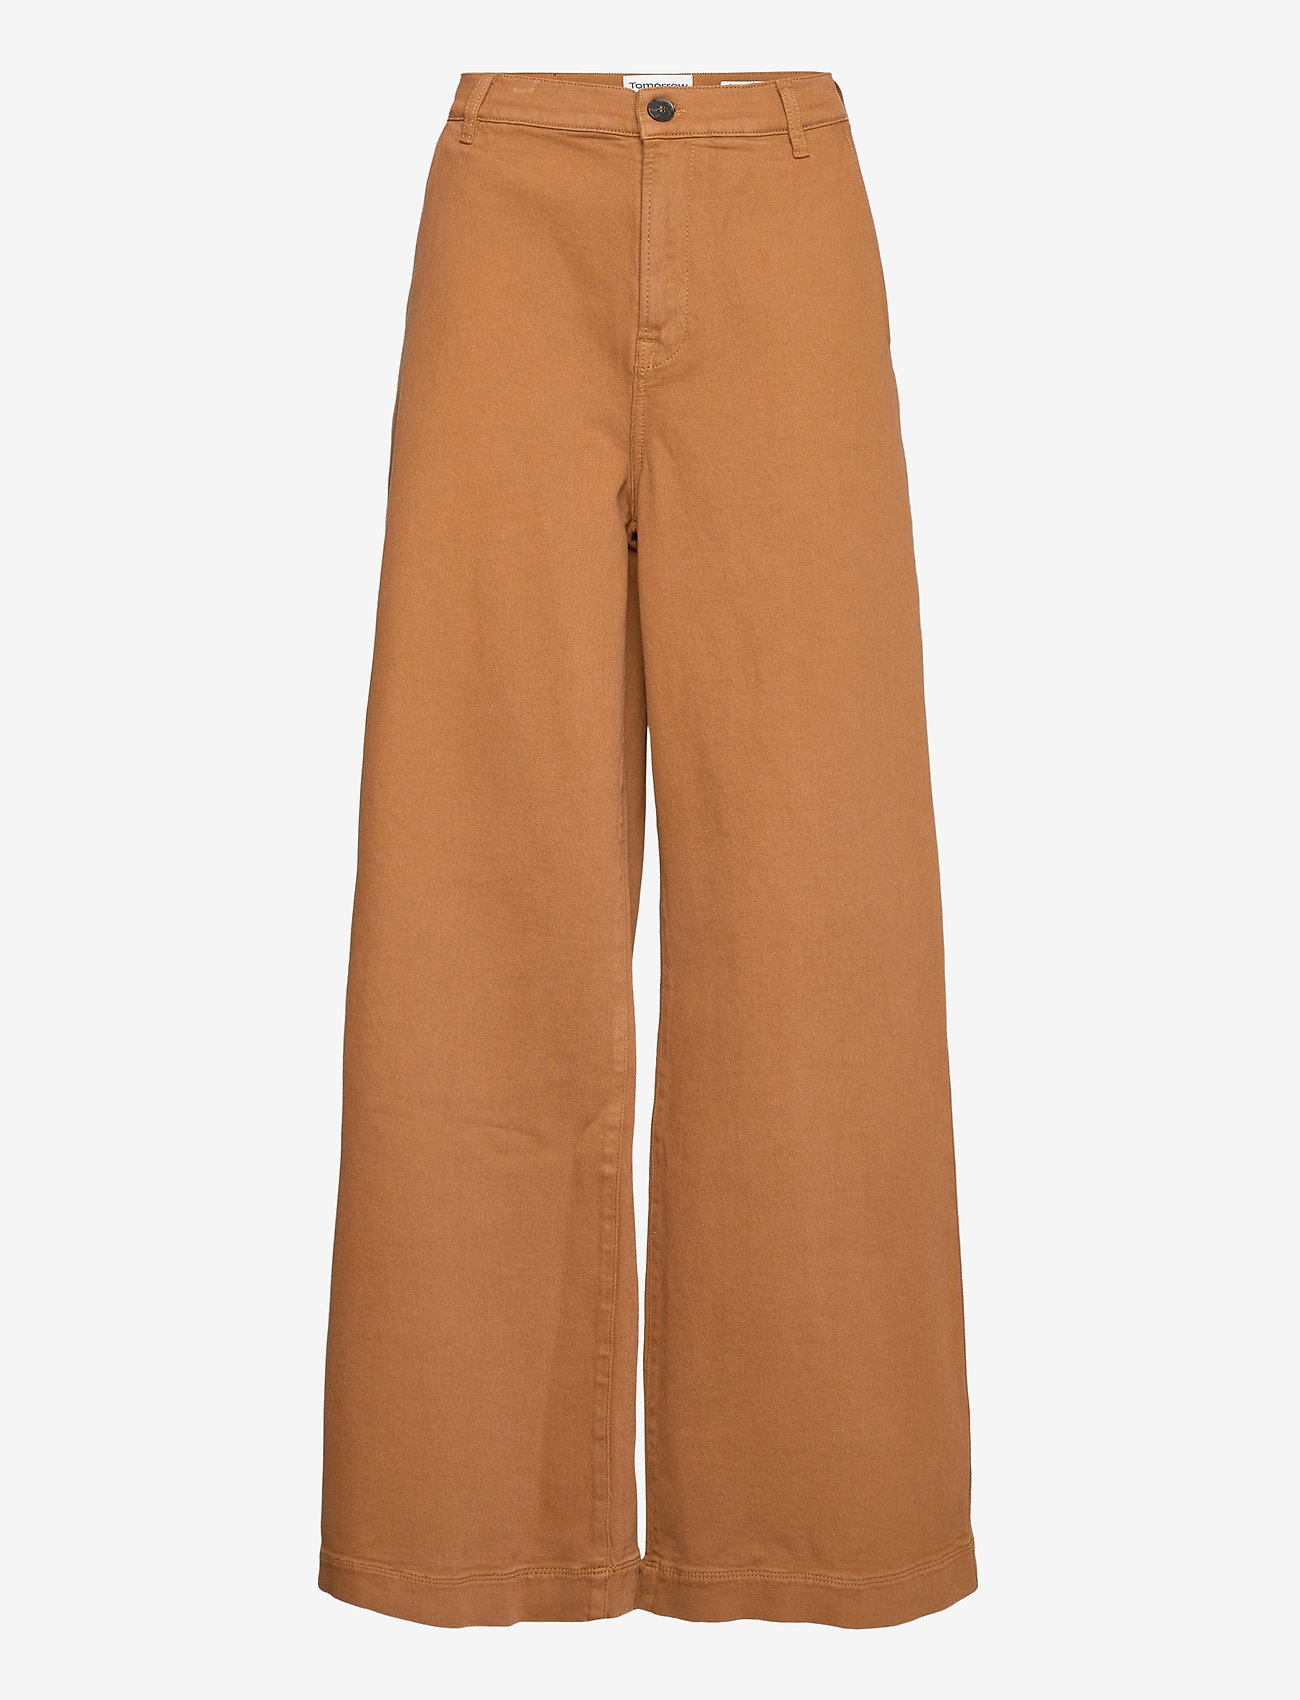 Tomorrow - Kersee french jeans antique colour - hosen mit weitem bein - brown - 0